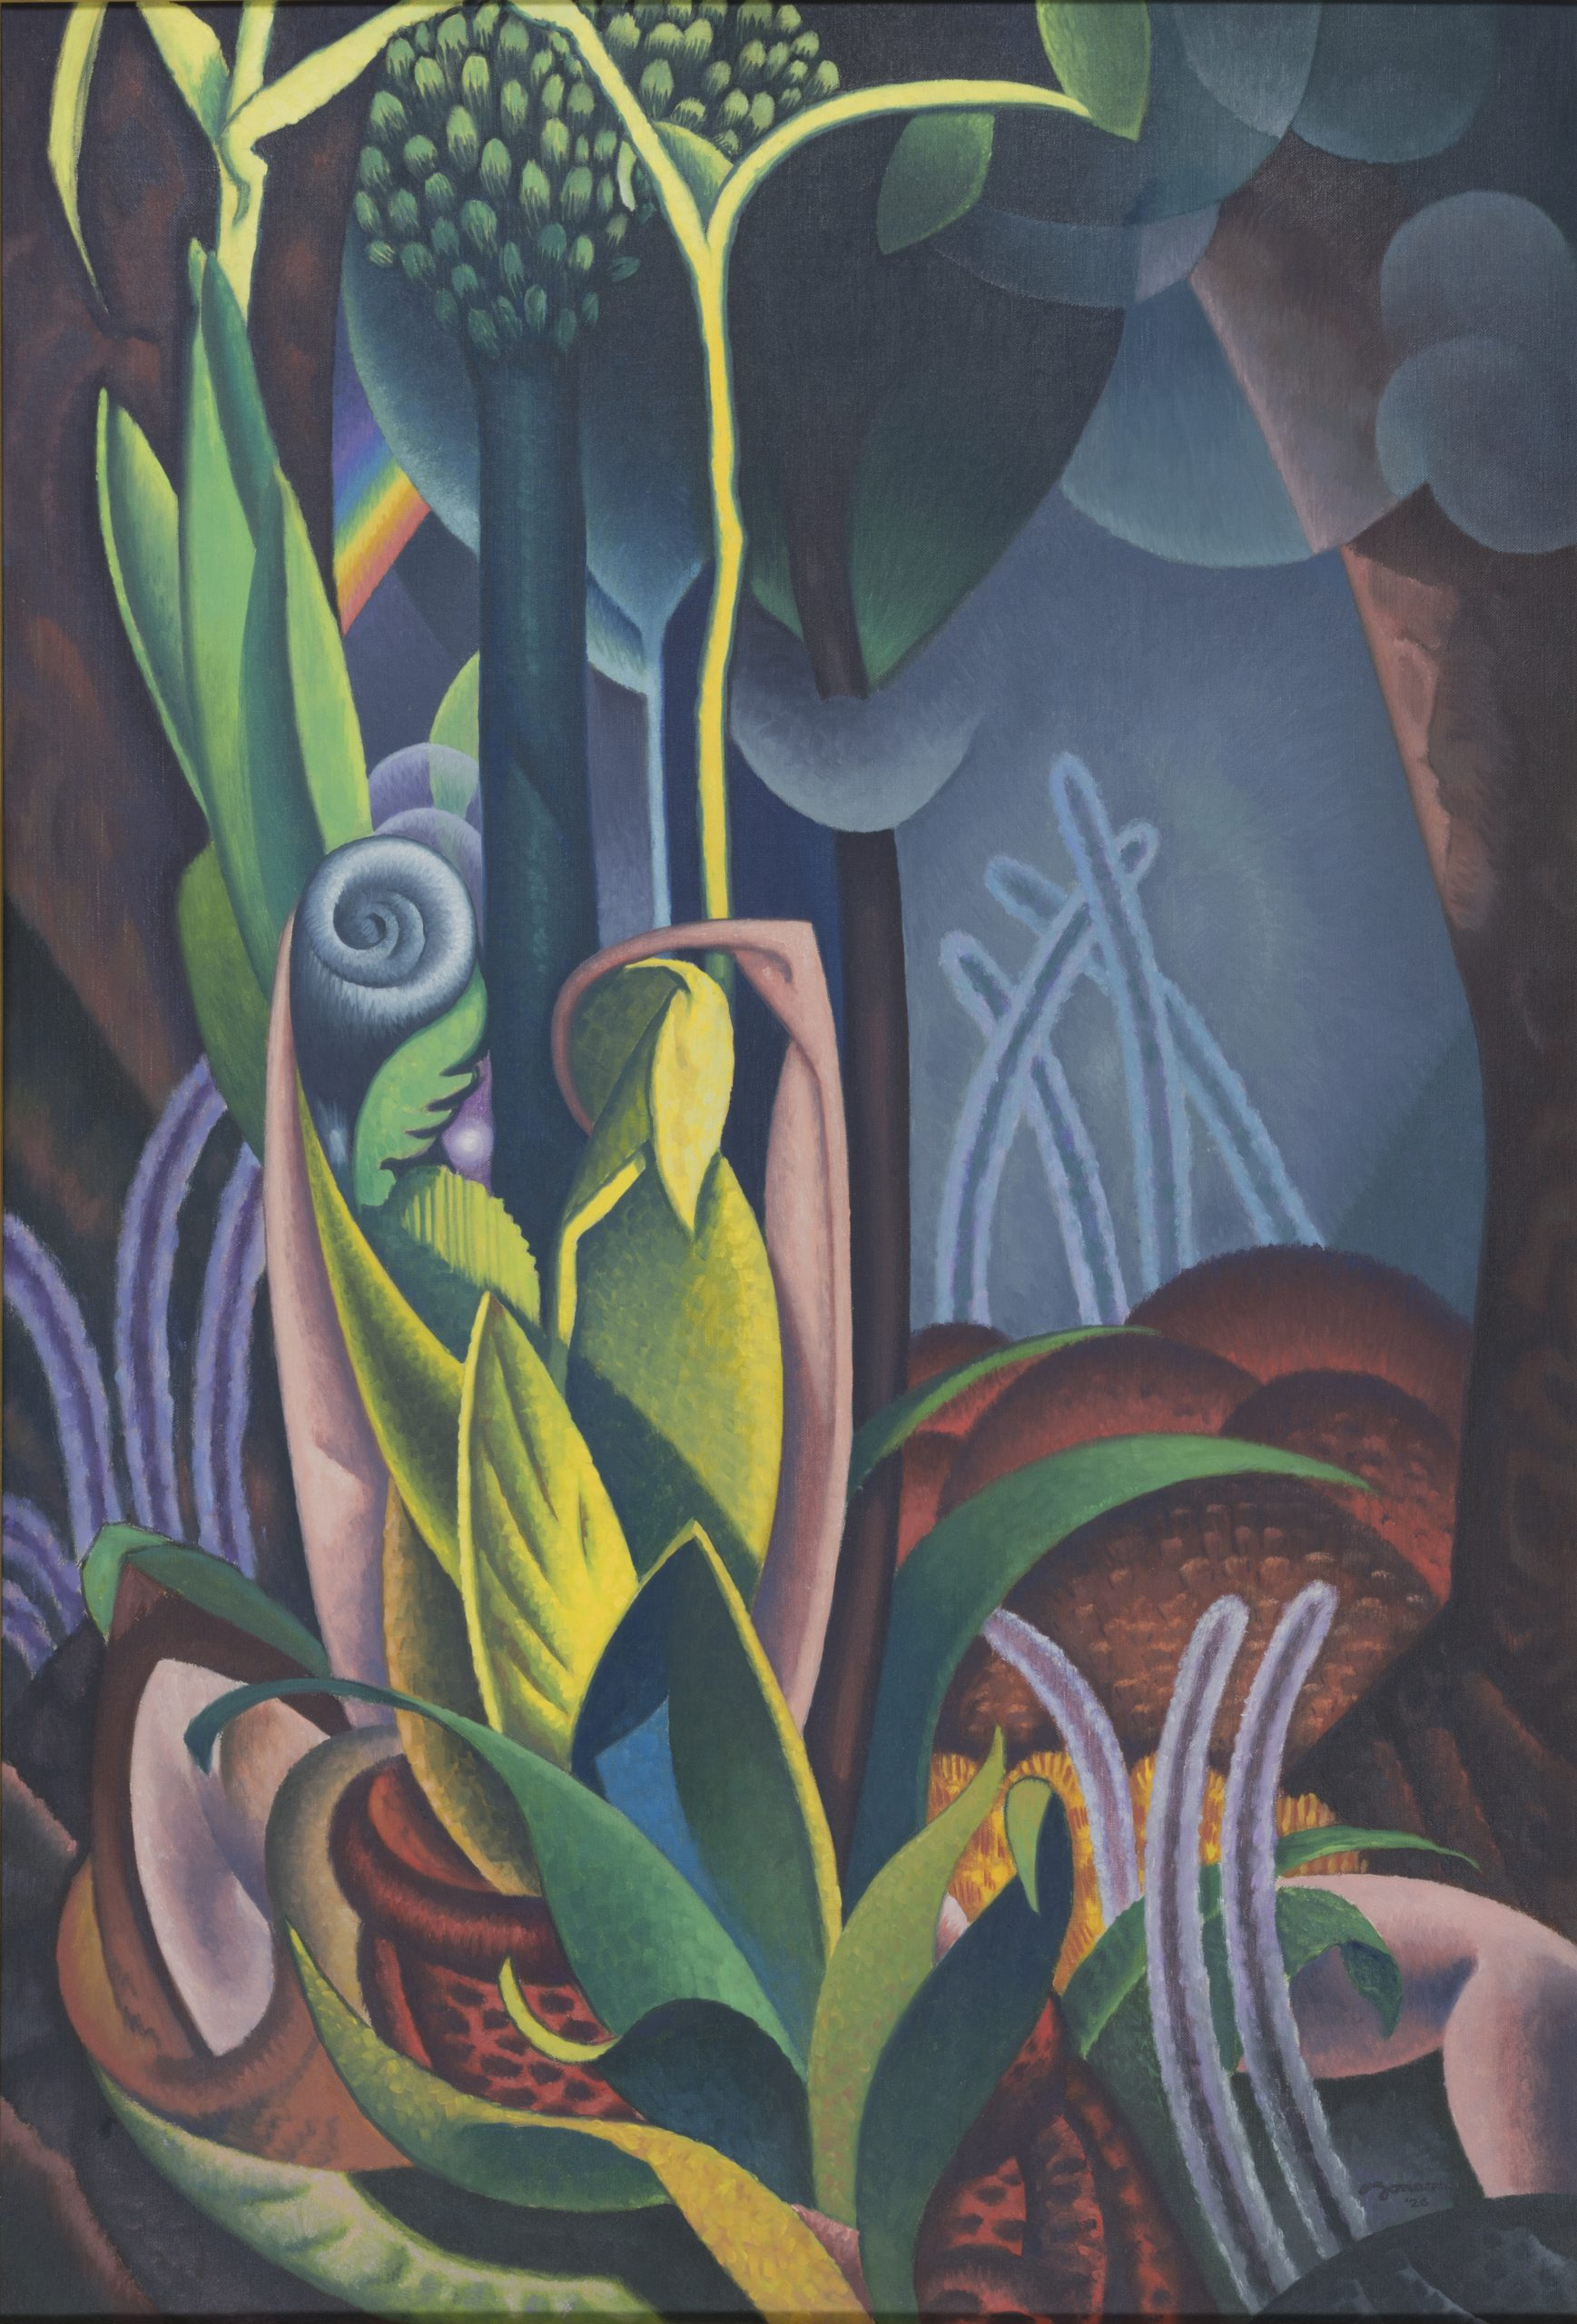 Spring from the Seasons Series, 1926, Oil on canvas, Gift of May Van Dyke to the Raymond Jonson Collection